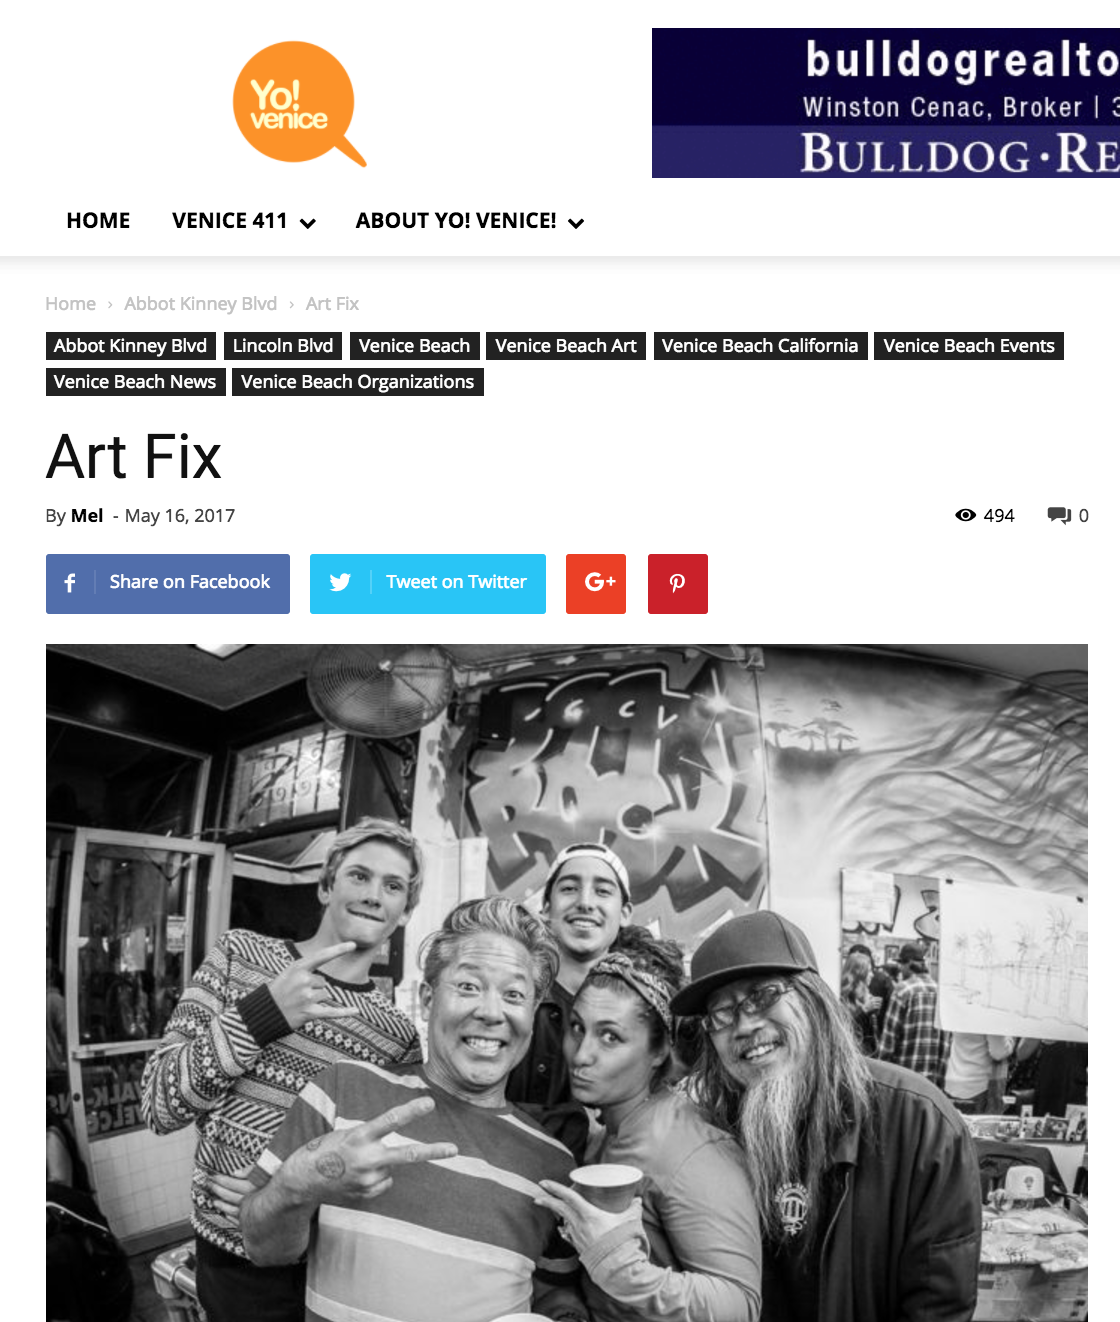 """Wabi Hosts EAT ART - Poet James Berkowitz will curate ARTravenous, a celebration of life, art, culture, poetry, and music at the Canal Club, 2025 Pacific Avenue, and Wabi Sabi, at 1635 Abbot Kinney Boulevard, will host the """"EAT ART/Before They Go"""" exhibit by artist Barbara Lavery and photographer Debbie Zeitman."""